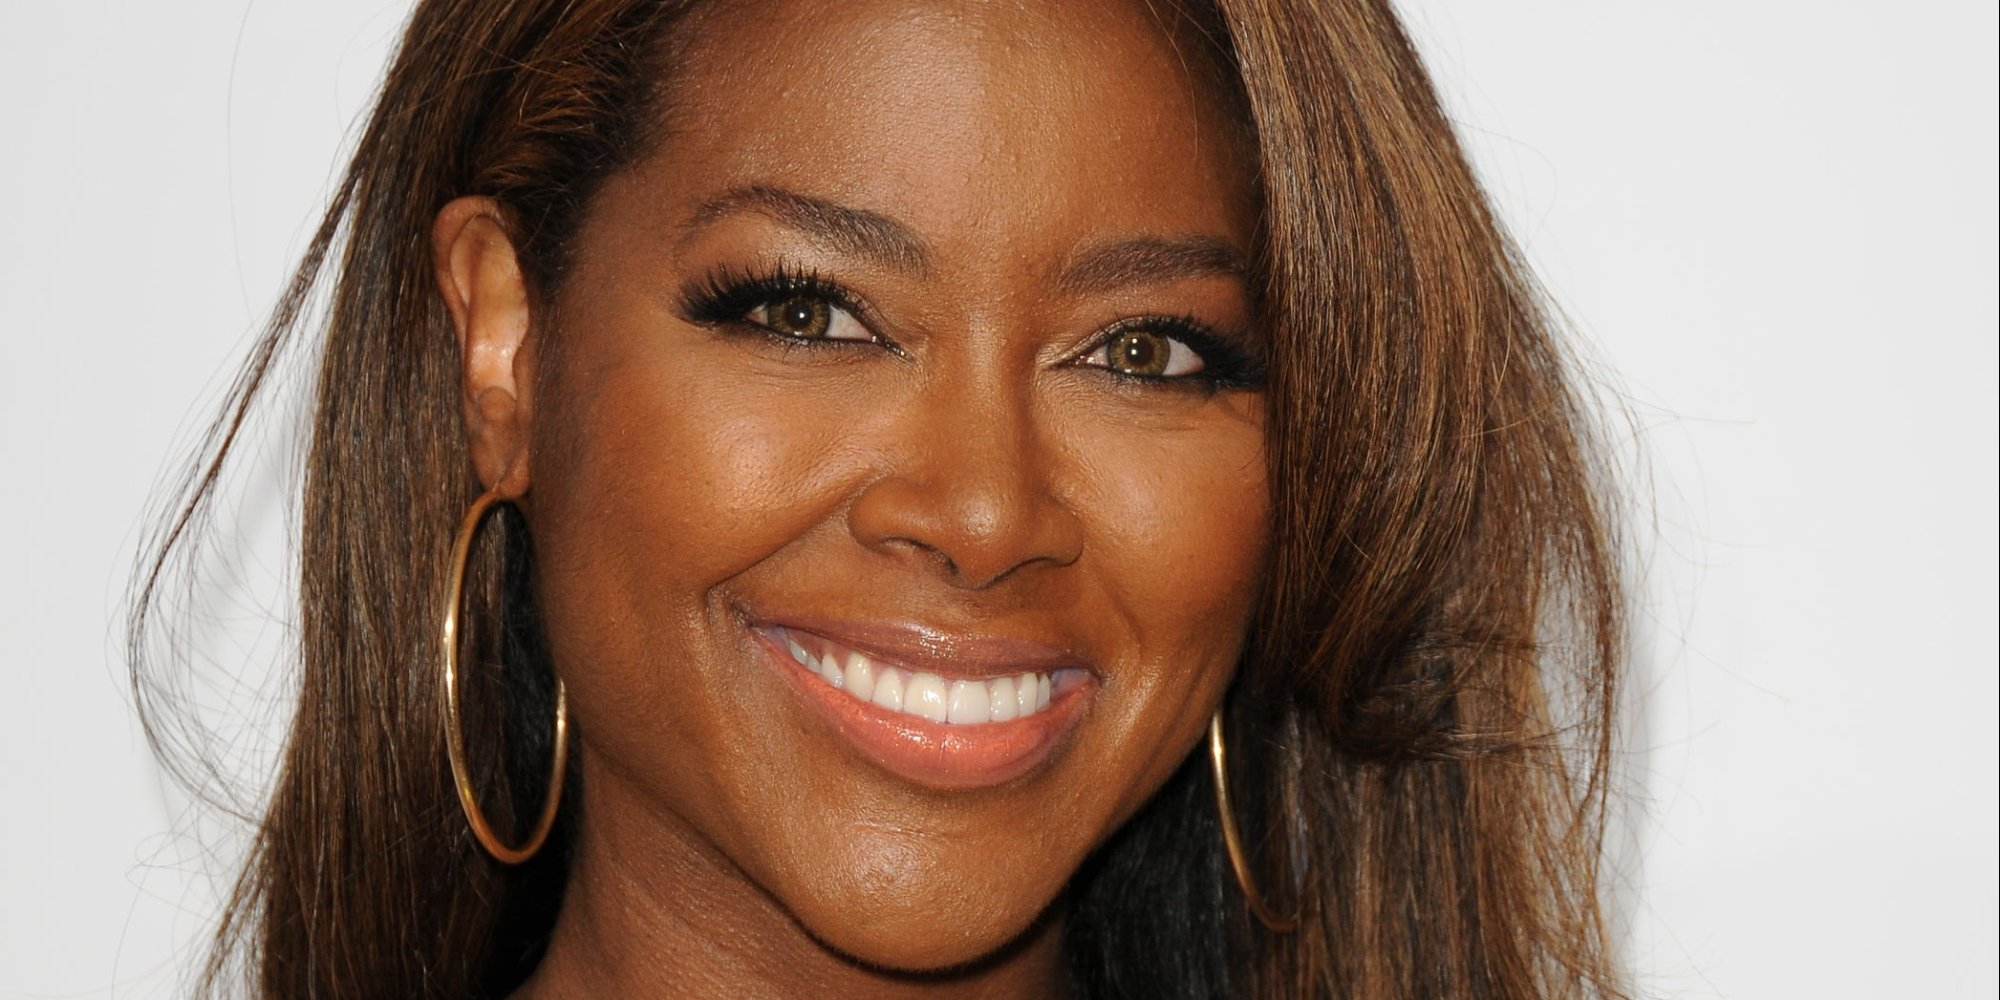 Kenya Moore Is Determined To Walk In The Light And Truth